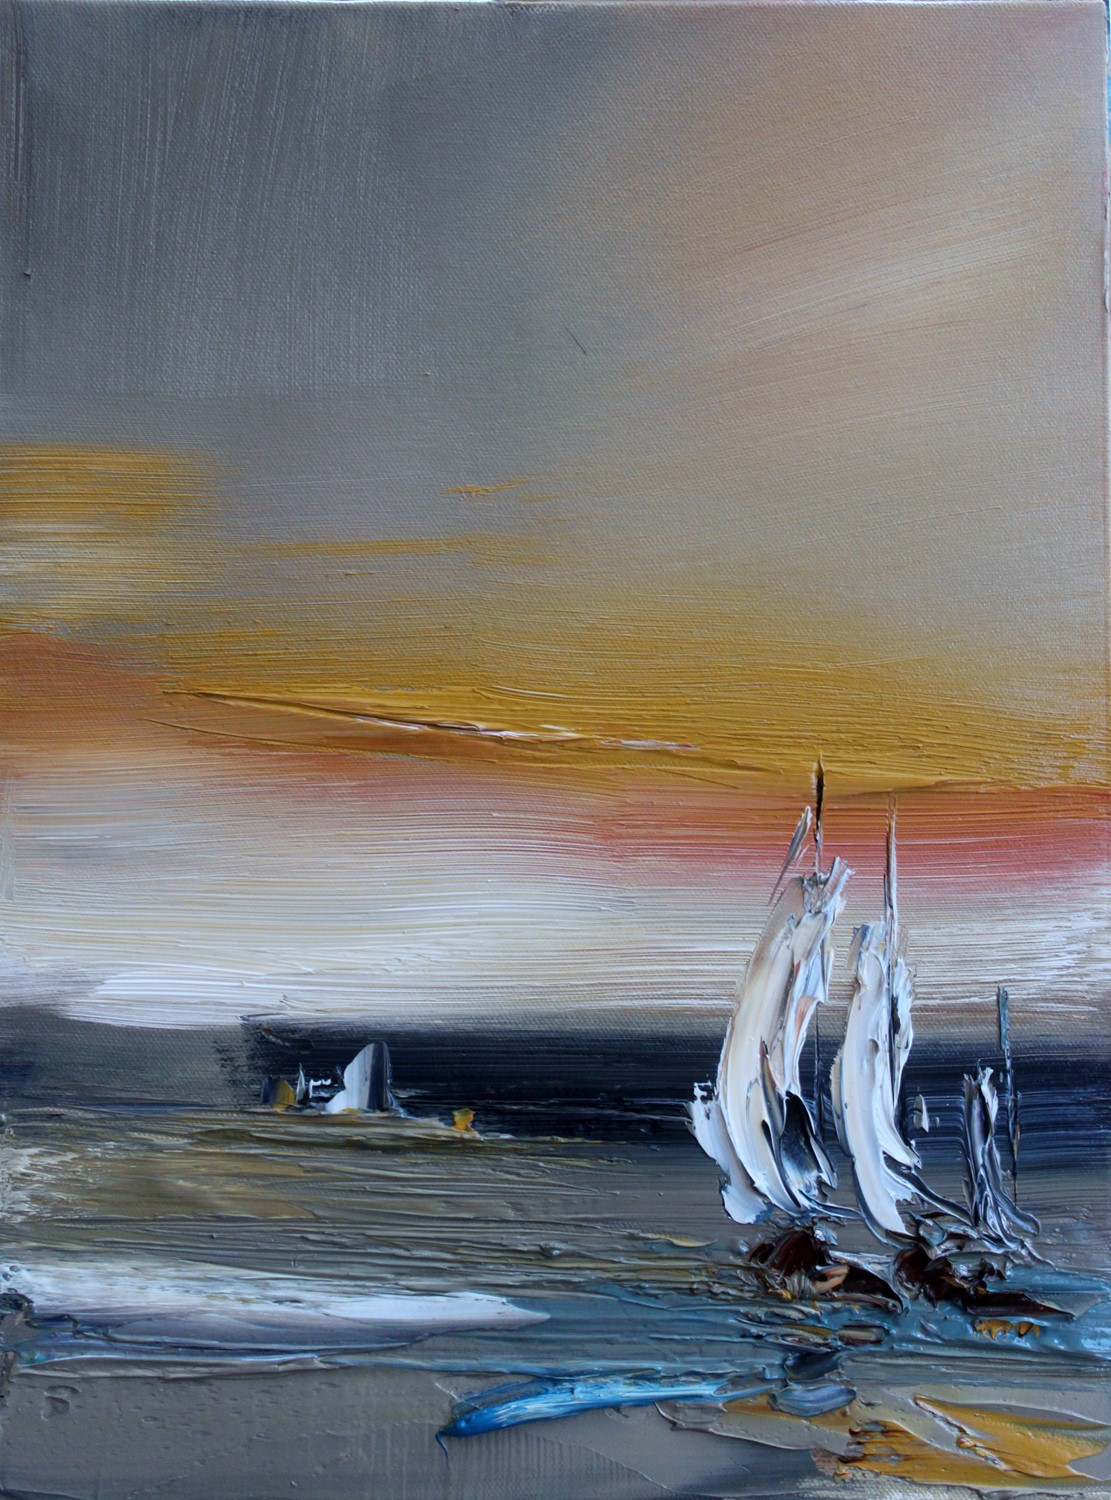 'Evening Yachts' by artist Rosanne Barr